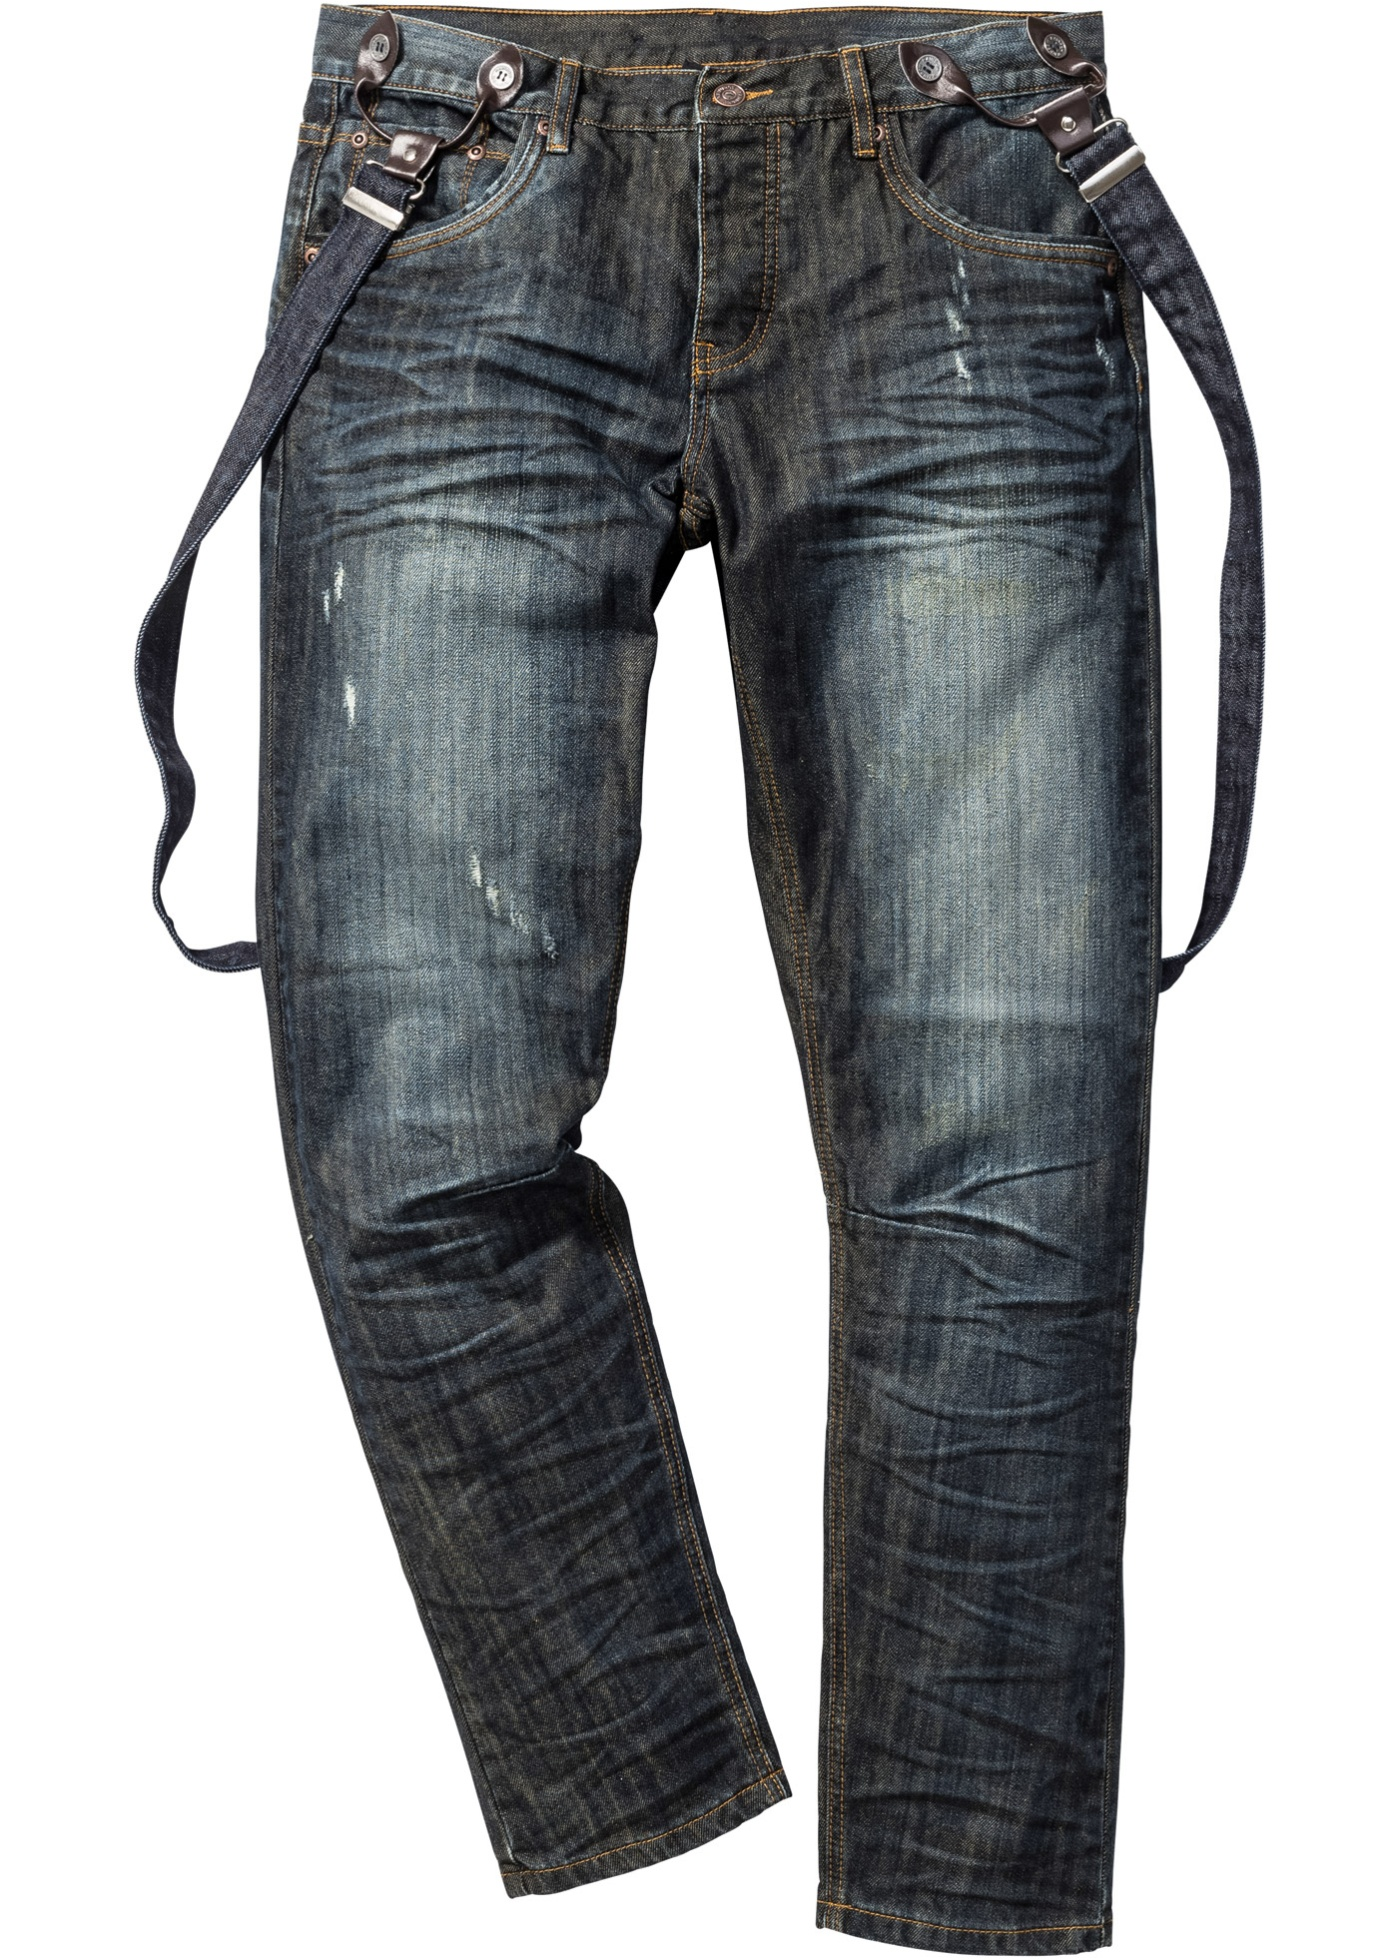 Jean Regular Fit Tapered, Longueur (pouces) 32